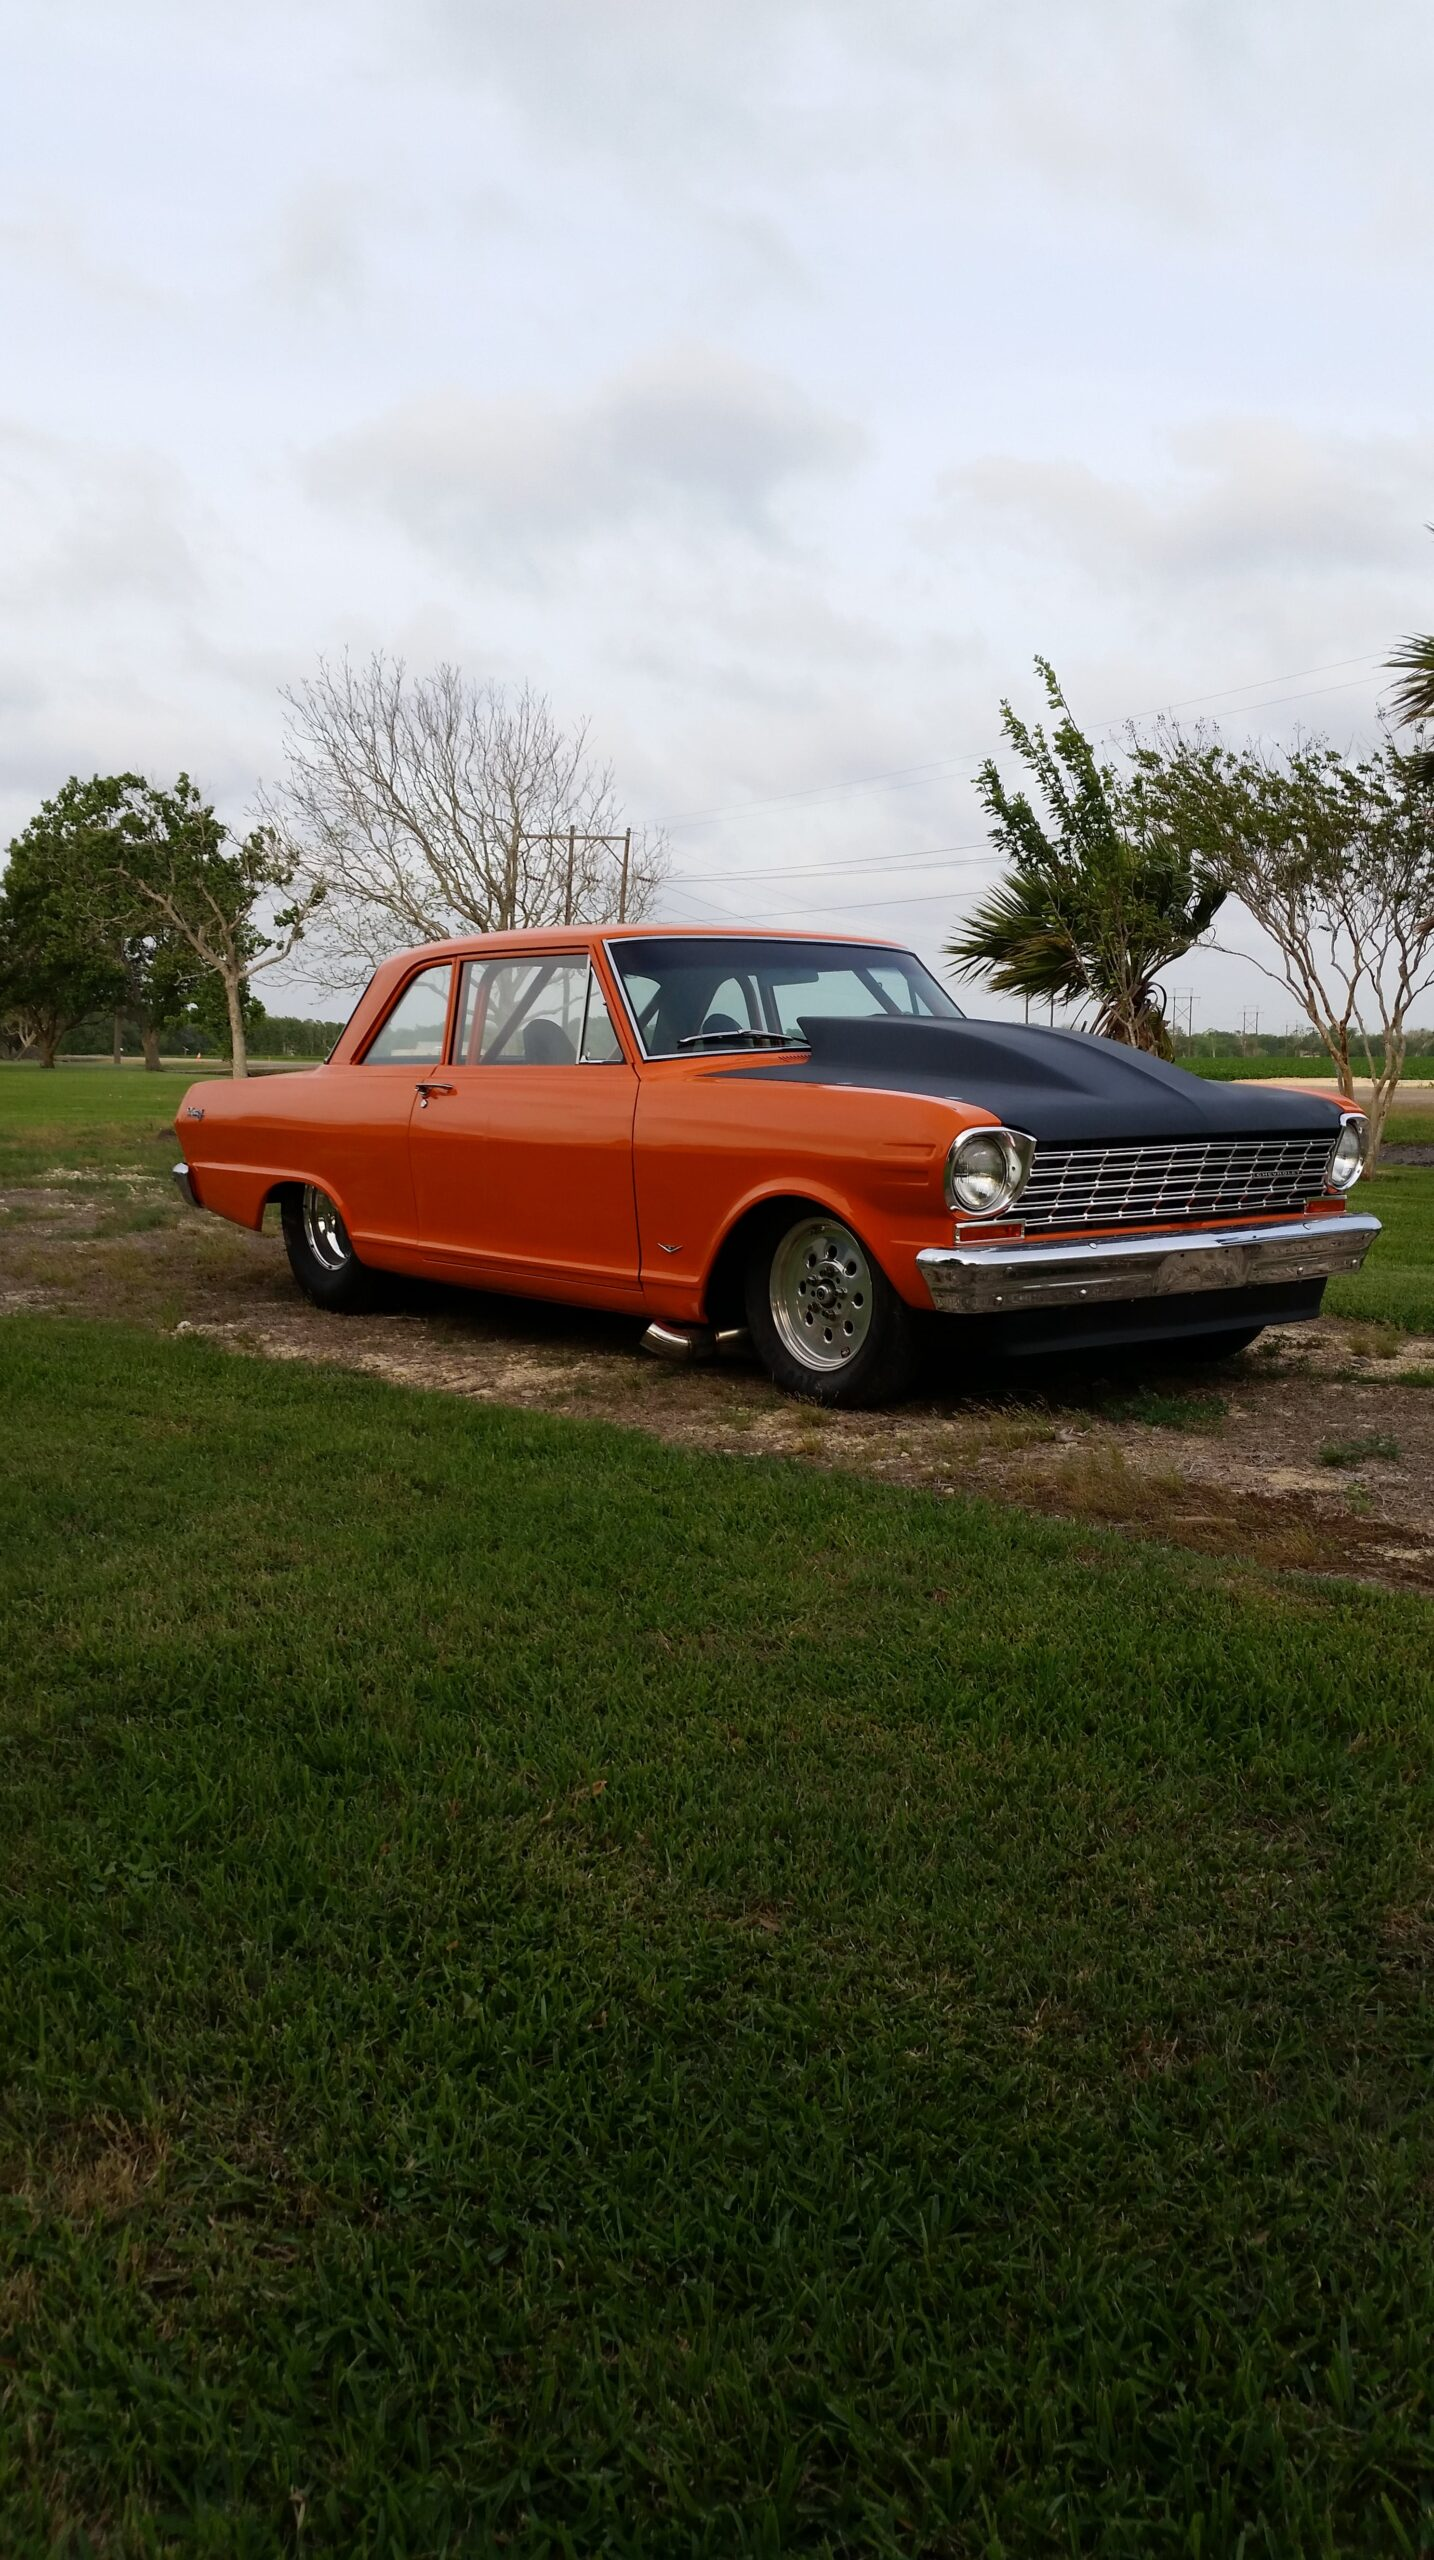 Scott Thigpen - Port Lavaca, TX - 1964 Chevy II